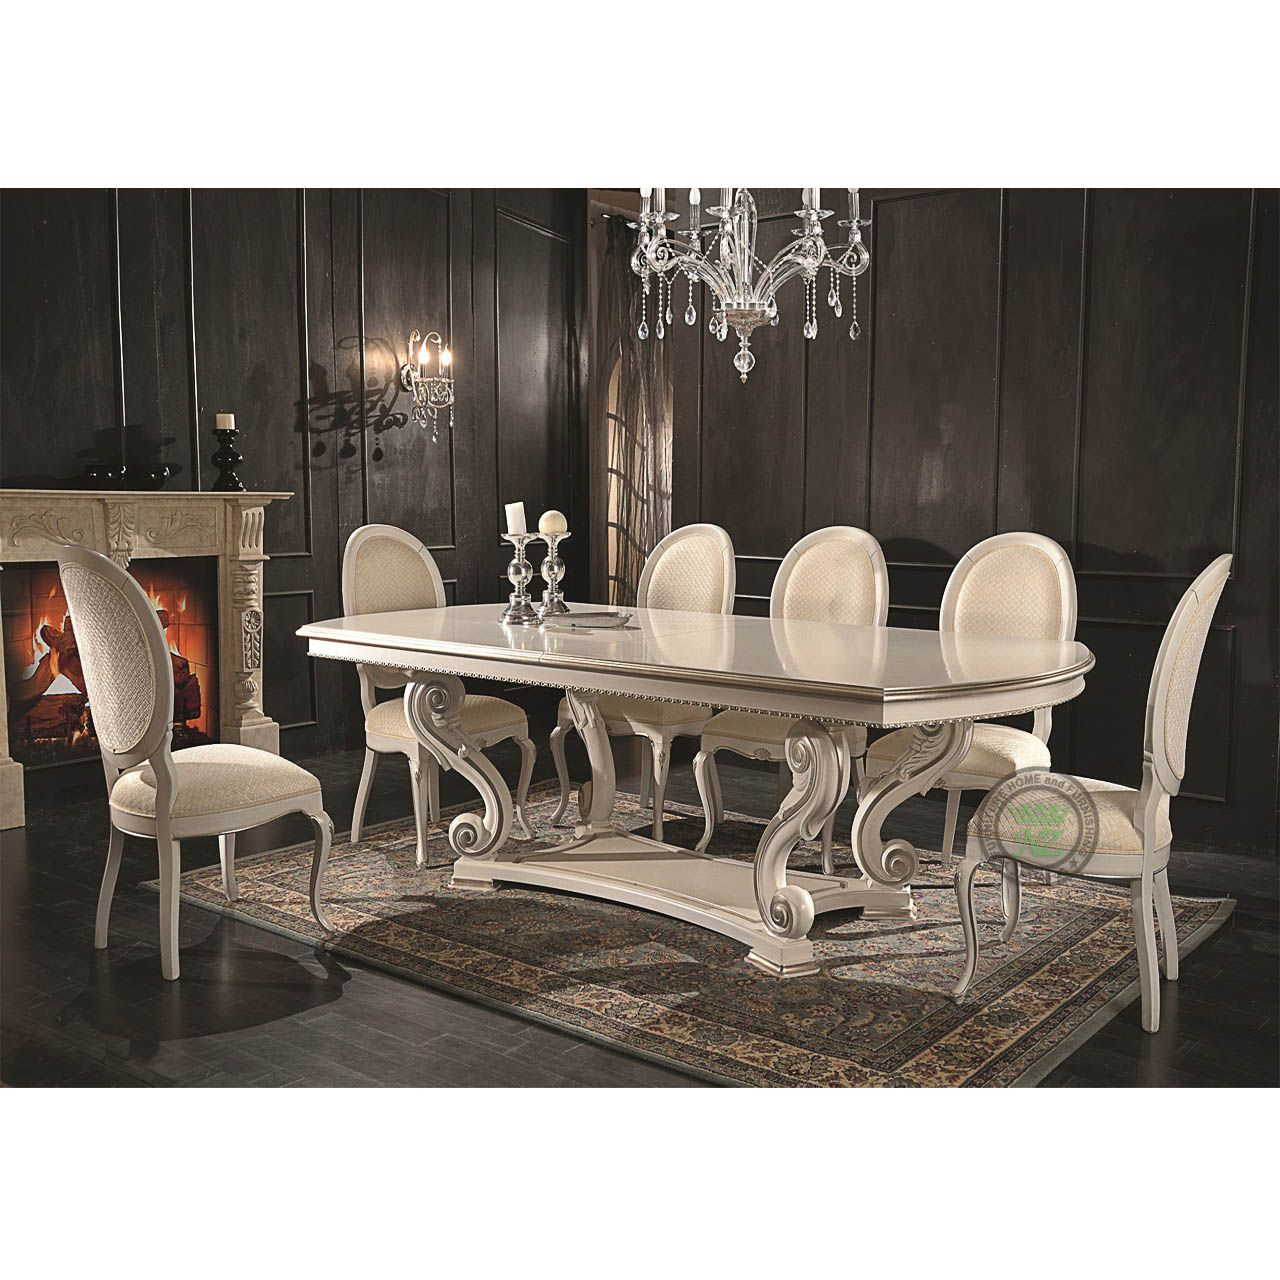 18++ Expensive dining table and chairs Inspiration